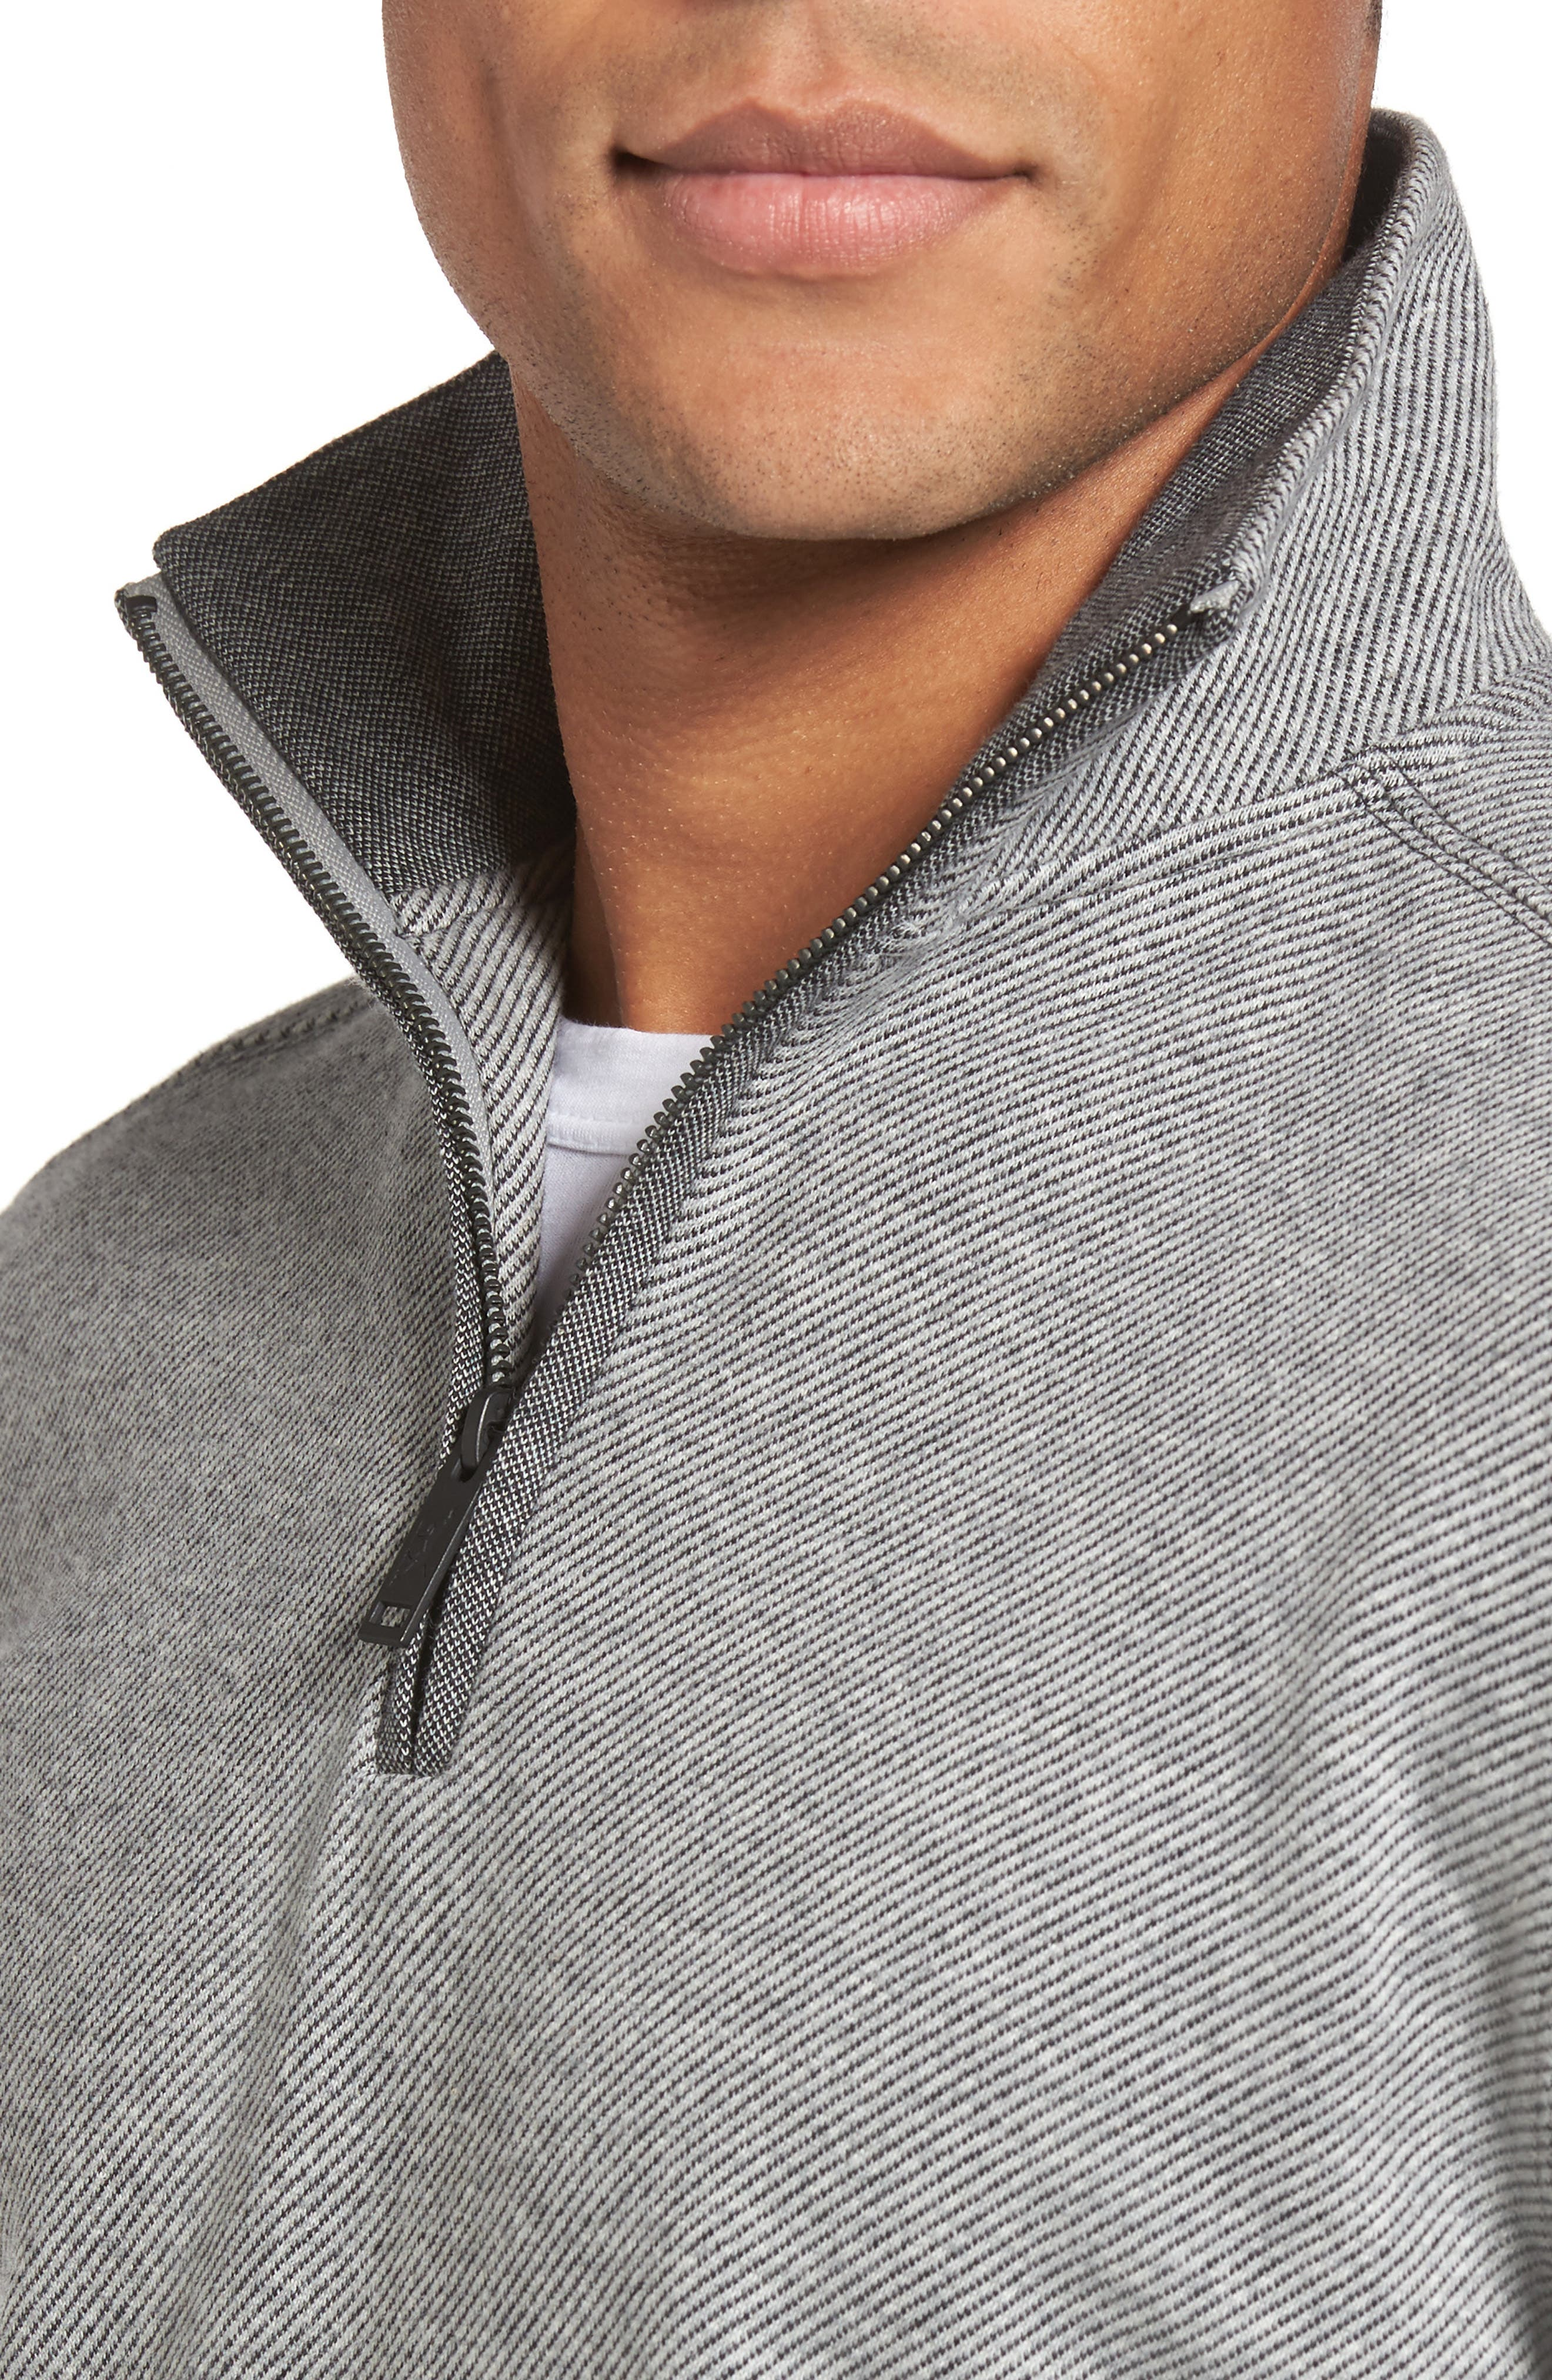 Meyer Desert Quarter Zip Pullover,                             Alternate thumbnail 4, color,                             Smoke